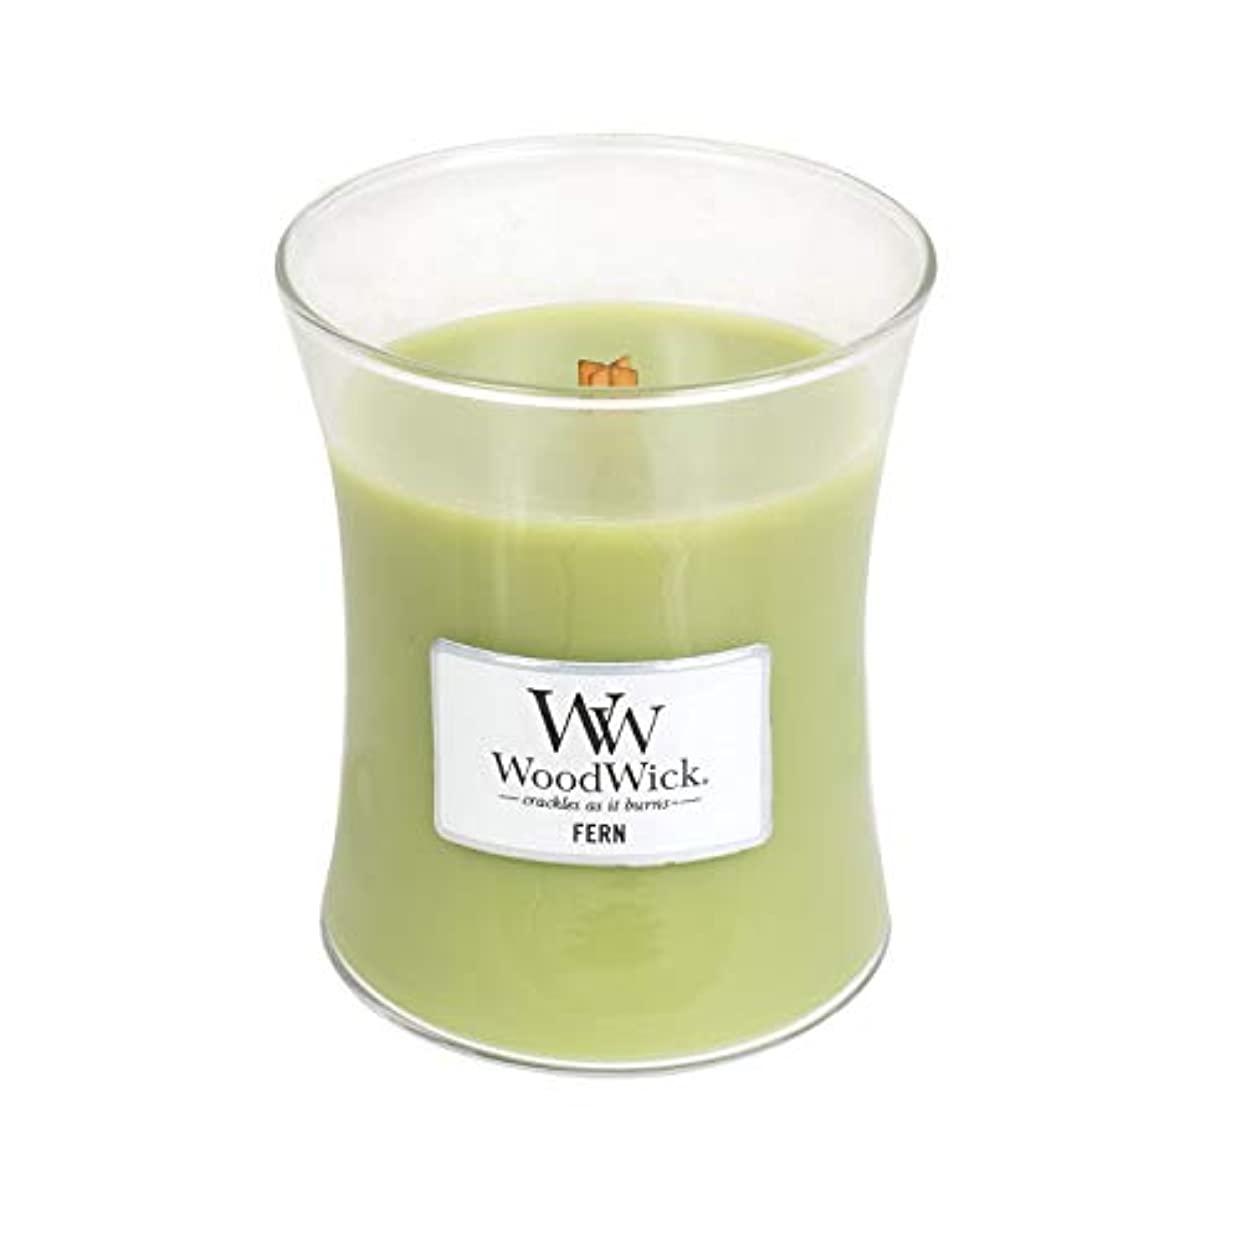 (Medium, Fern) - WoodWick Medium Hourglass Scented Candle, Fern